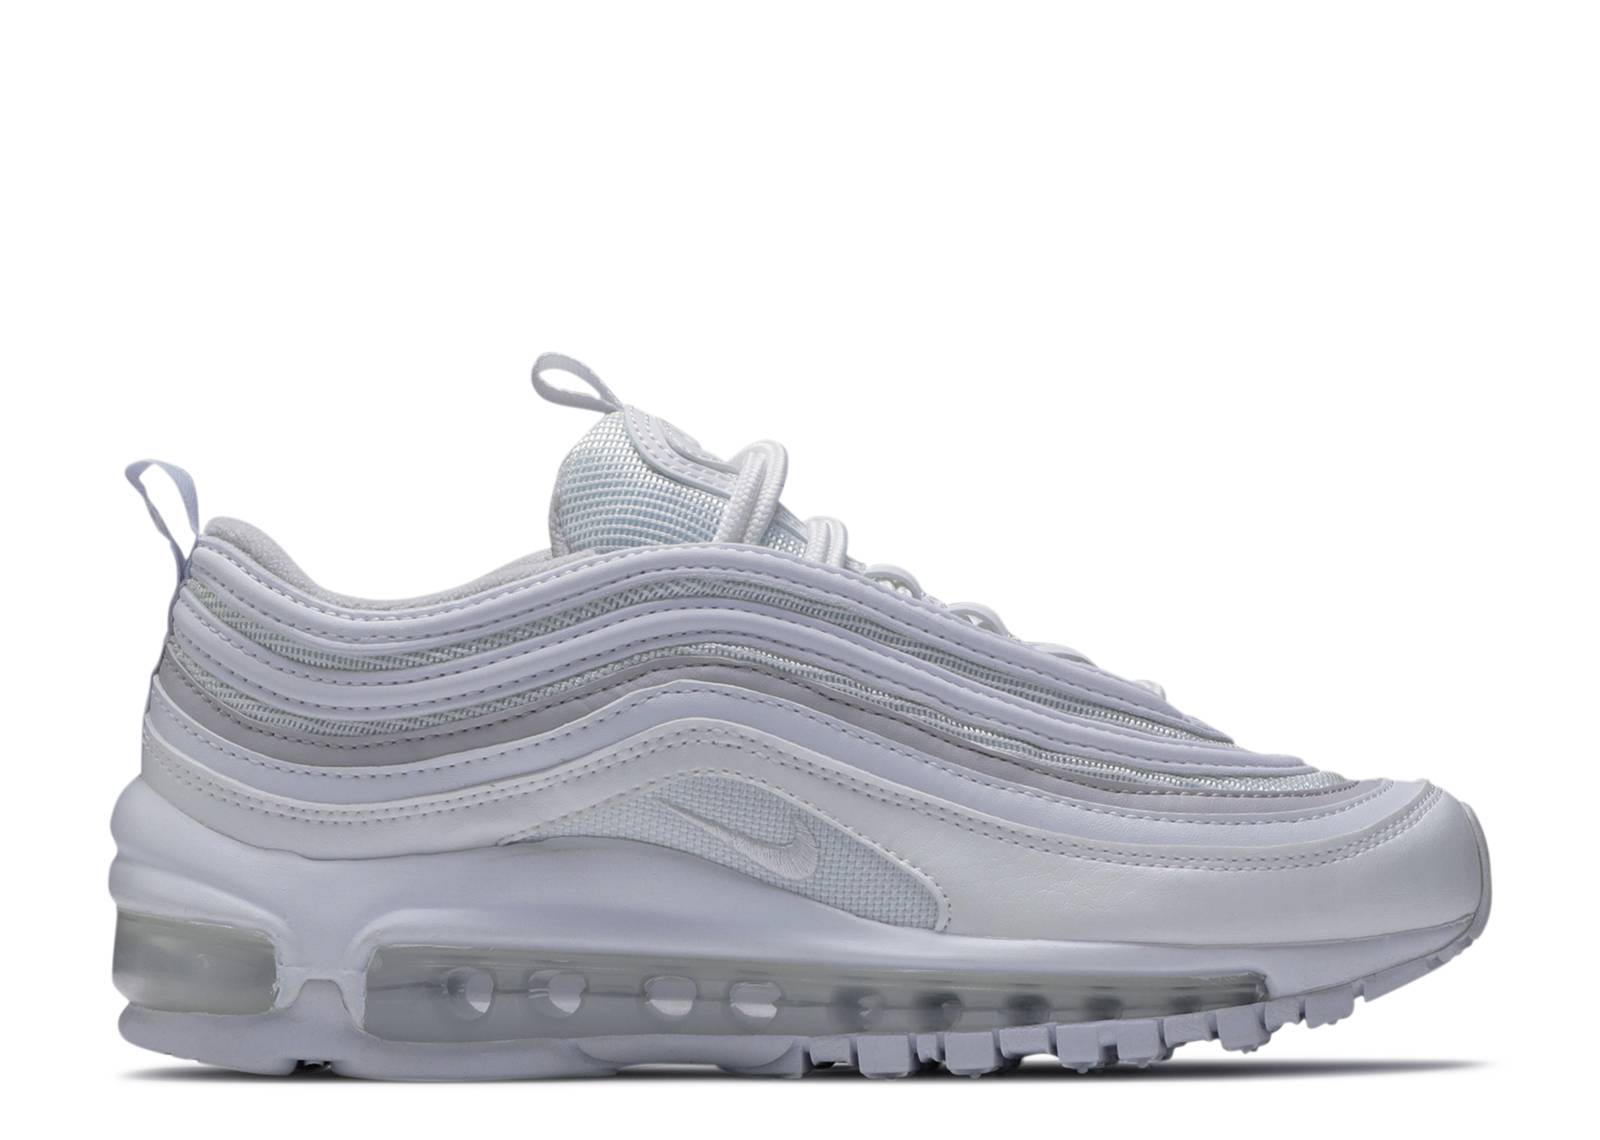 Look for AIR MAX 97 WHITE VAST GREY 921523 100 Sale at